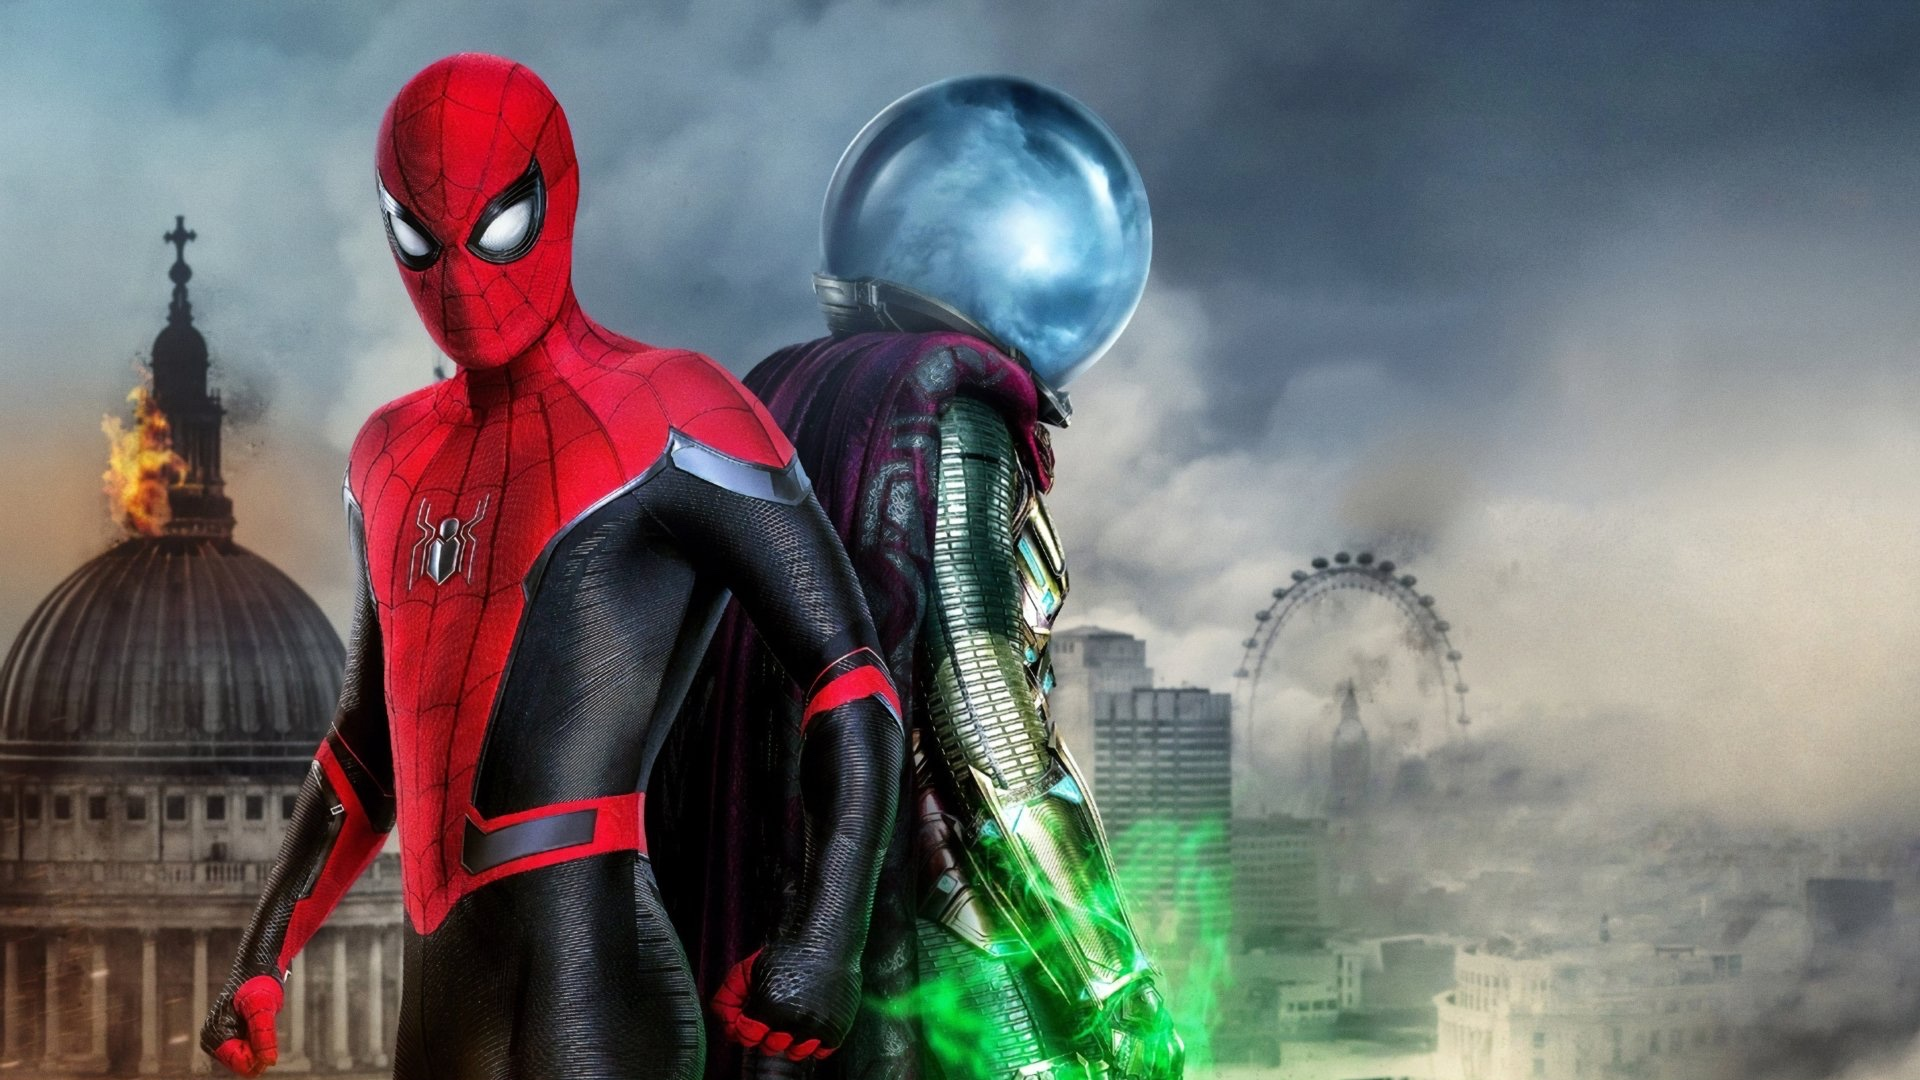 spider-mans-spidey-sense-is-called-peter-tingle-in-amusing-new-promo-clip-for-spider-man-far-from-home-social.jpg